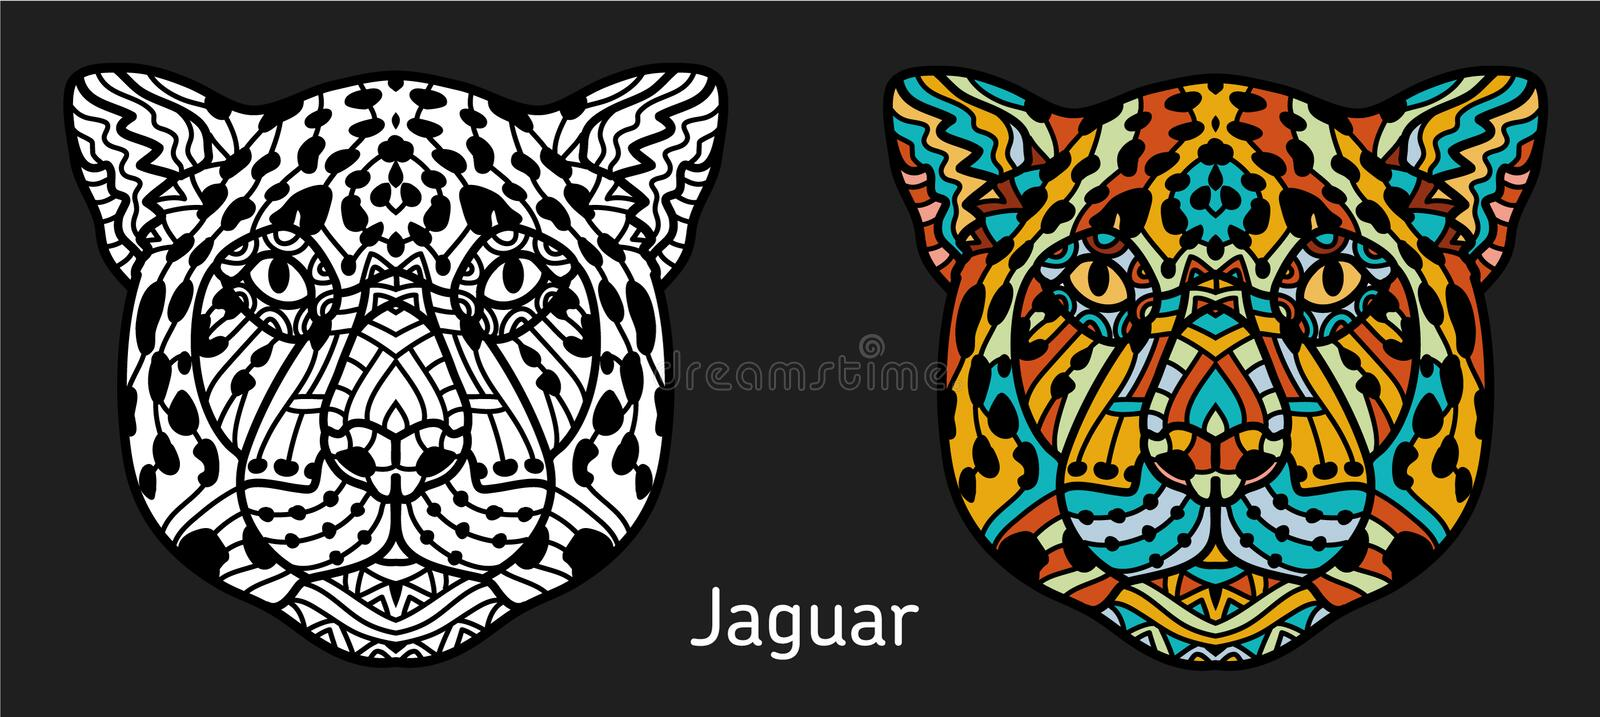 Hand-drawn Jaguar with ethnic doodle pattern. Coloring page - zendala, design for spiritual relaxation for adults vector illustration